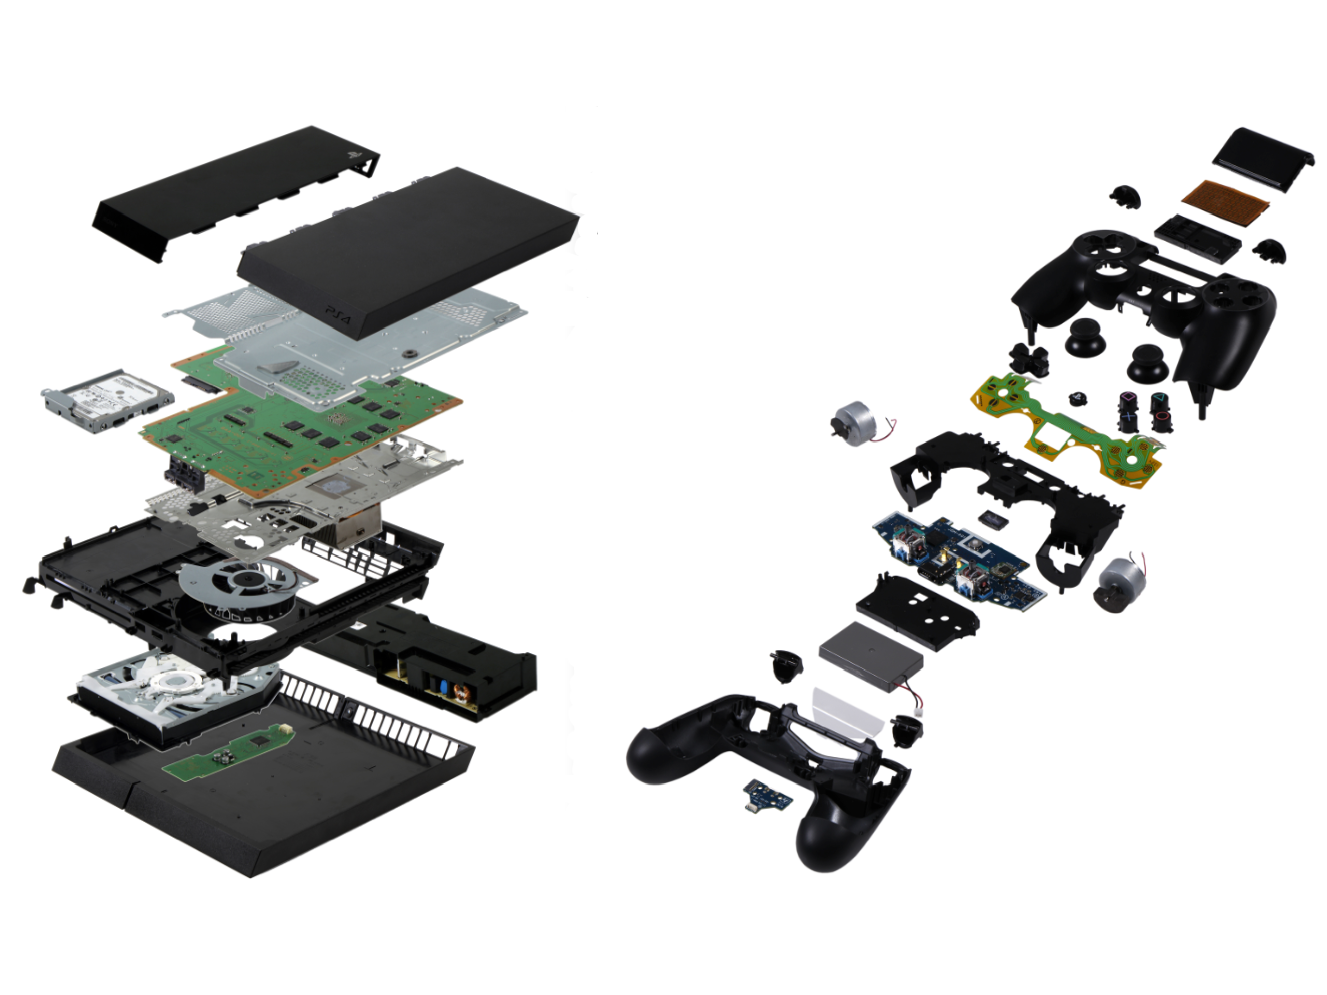 Sony's PlayStation 4 Costs $381 to Build — Only $18 Under Retail Price — In Teardown